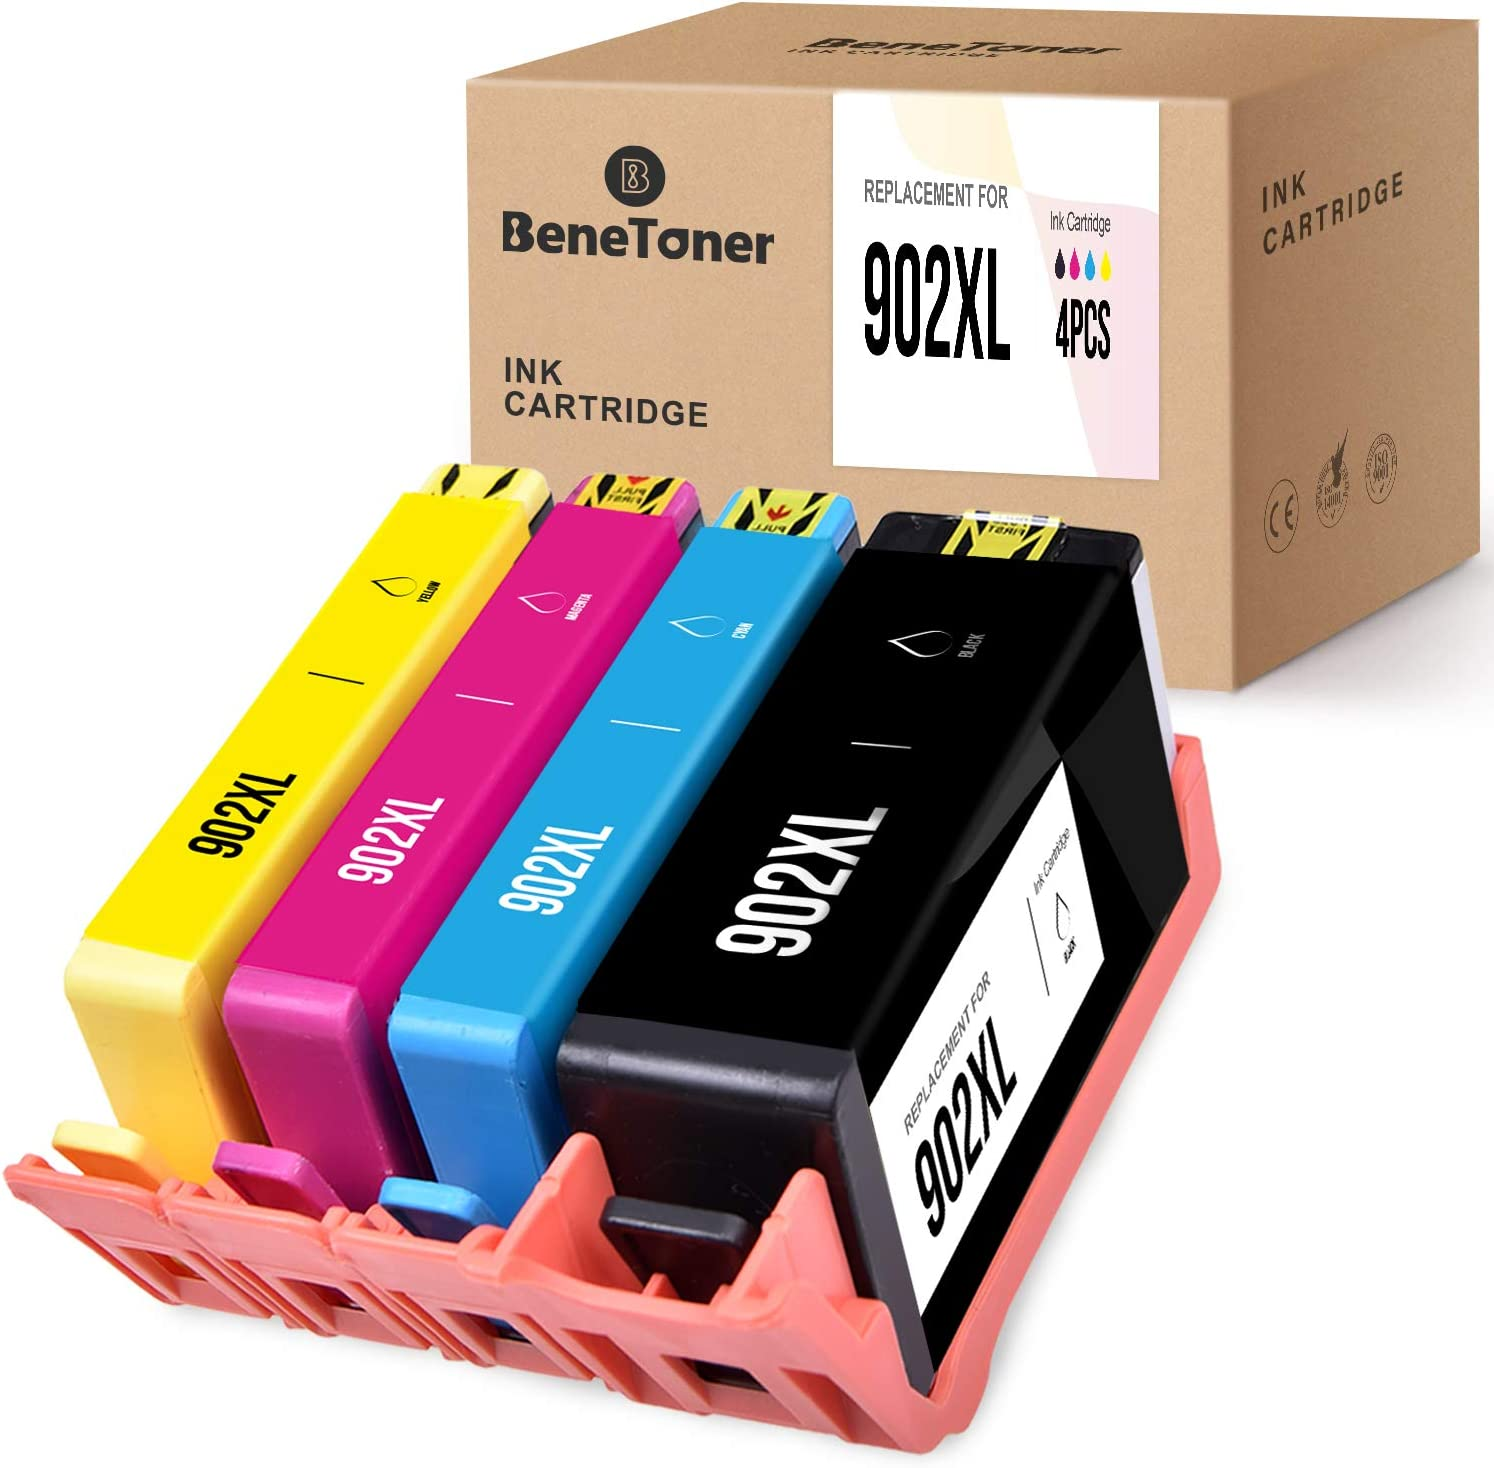 BENETONER Remanufactured Ink Cartridge Replacement for HP 902XL 902 XL Work with Officejet 6962 6958 Pro 6978 6968 (Black, Cyan, Magenta, Yellow, 4-Pack)